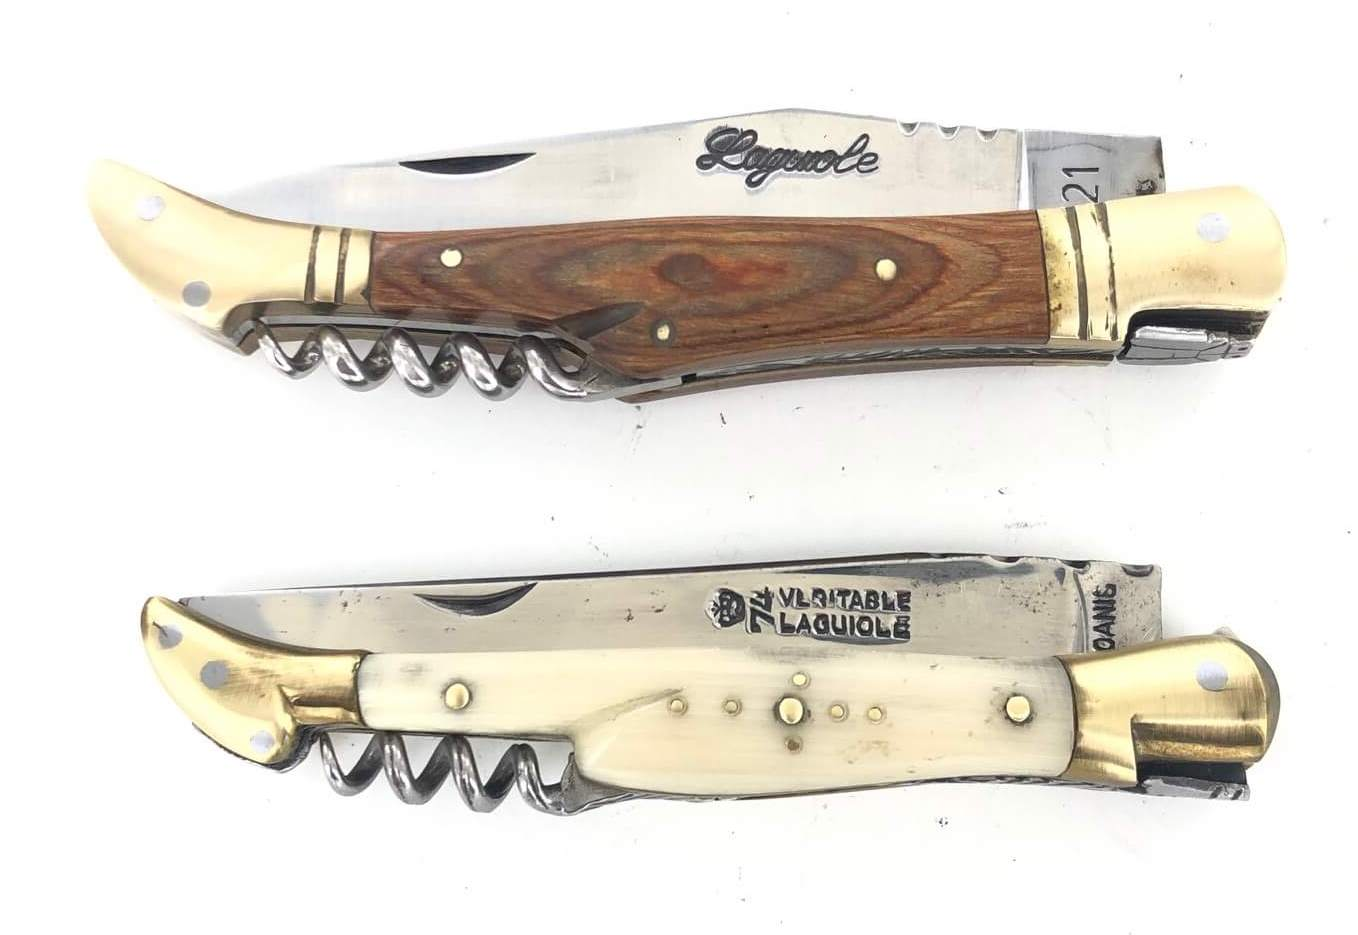 Laguiole pocket knife